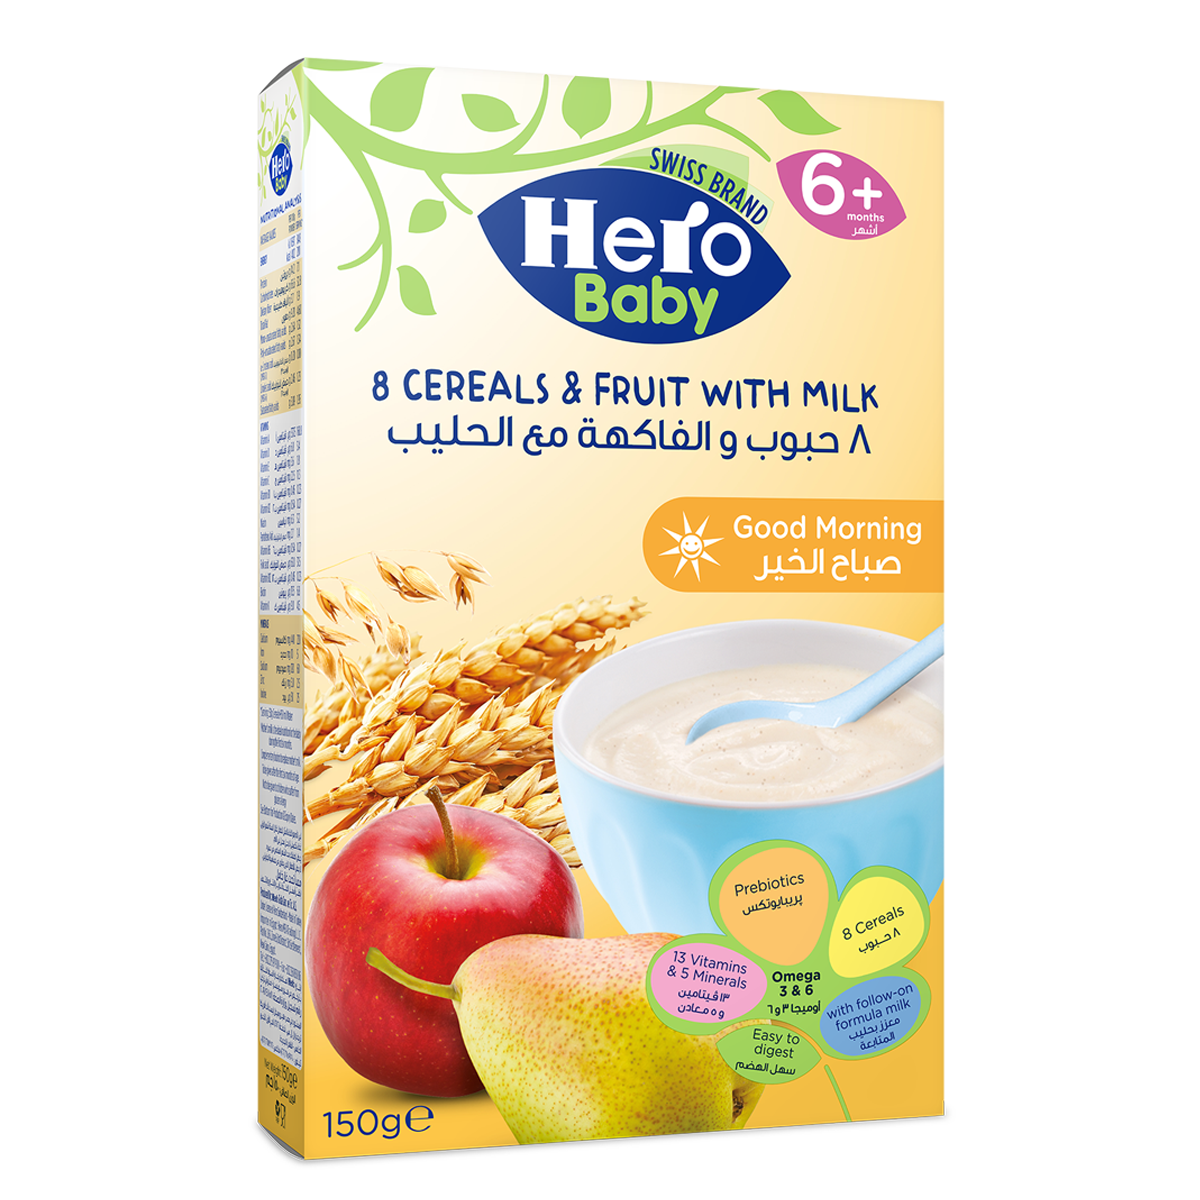 Good Morning 8 Cereals & Fruit With Milk » HERO BABY STORE